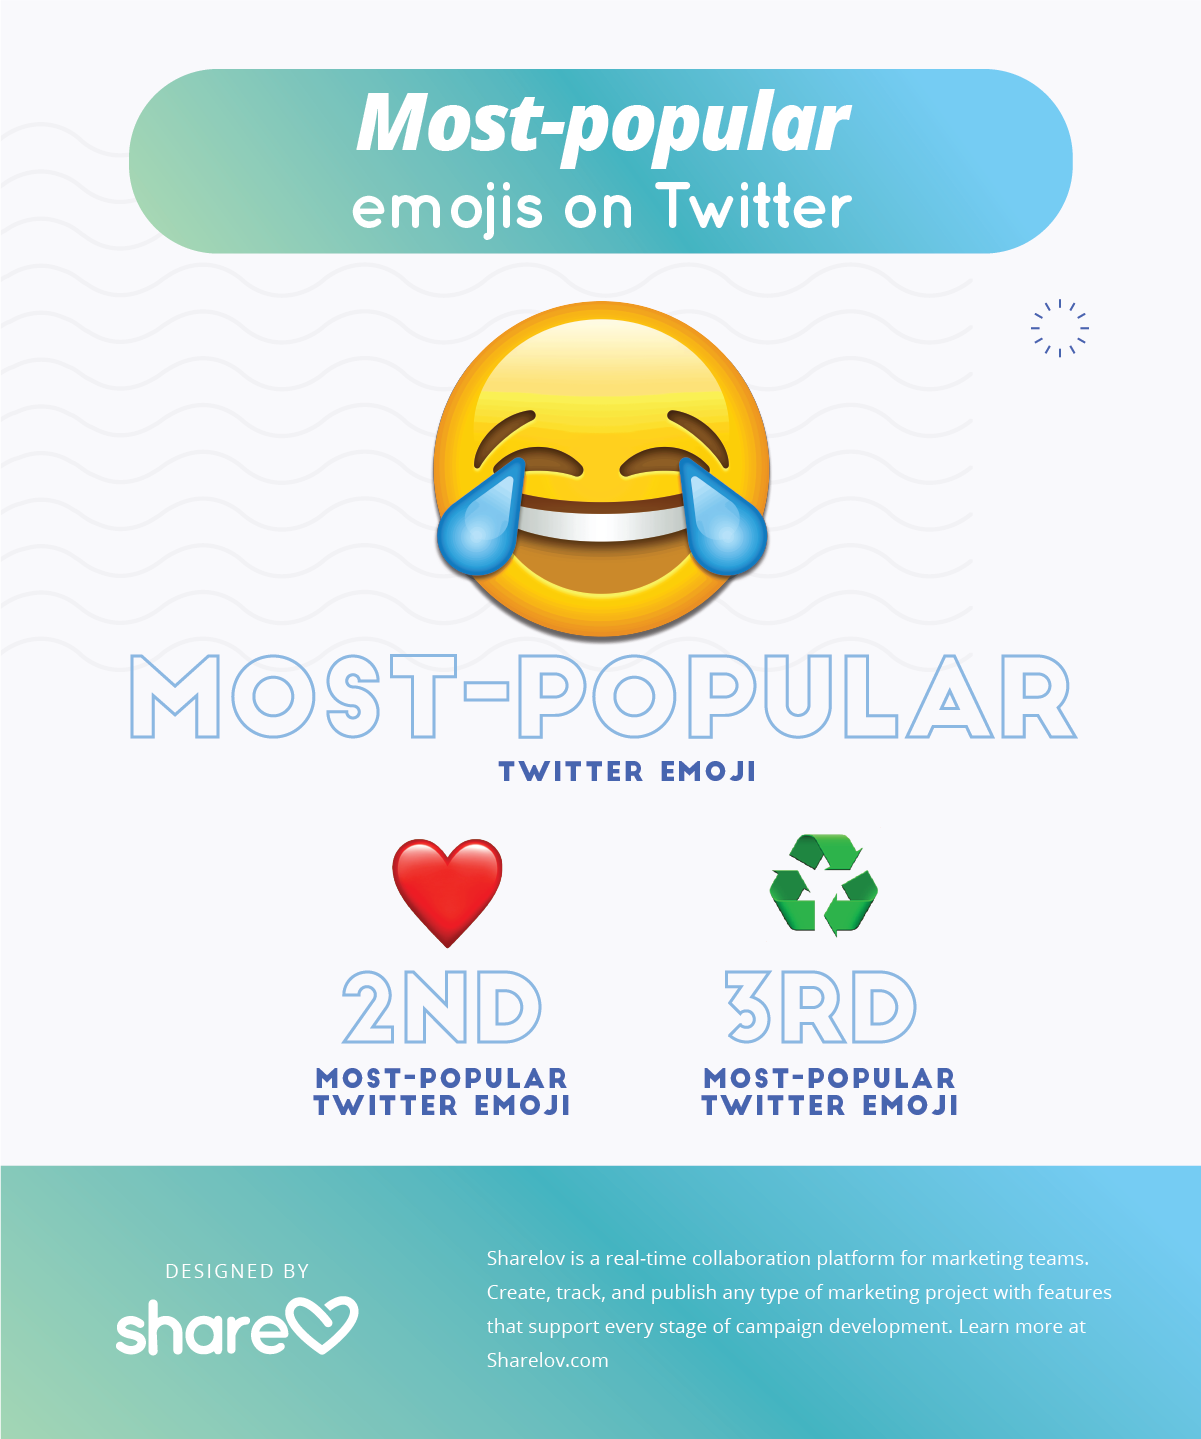 Most-popular emojis on Twitter